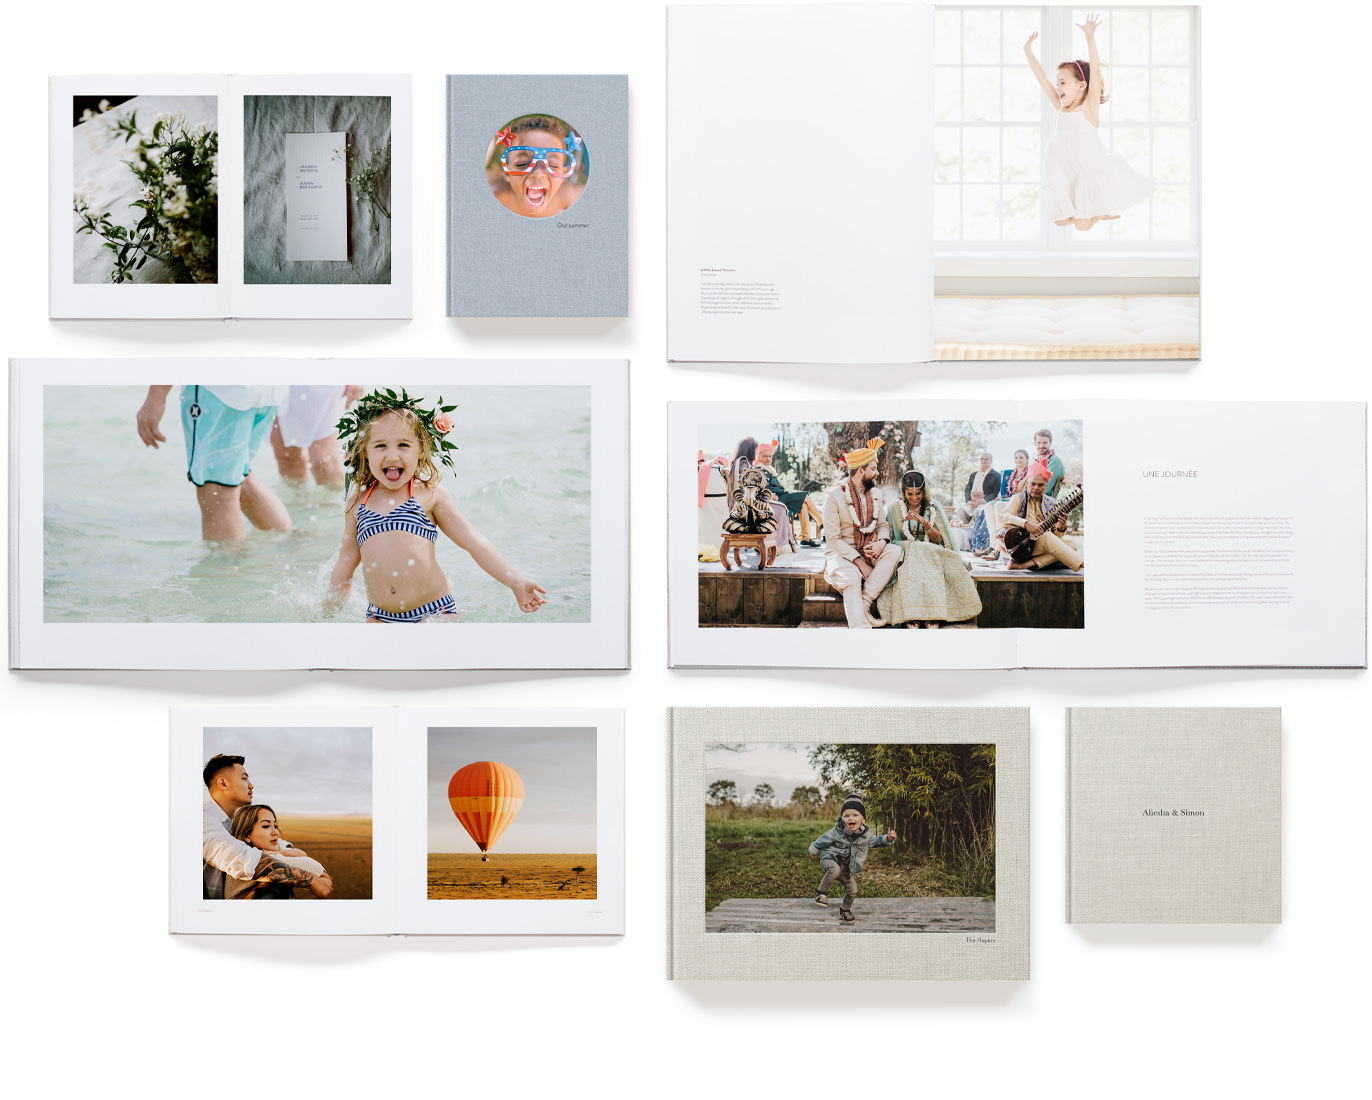 Selection of premium photo books showing designer layouts.